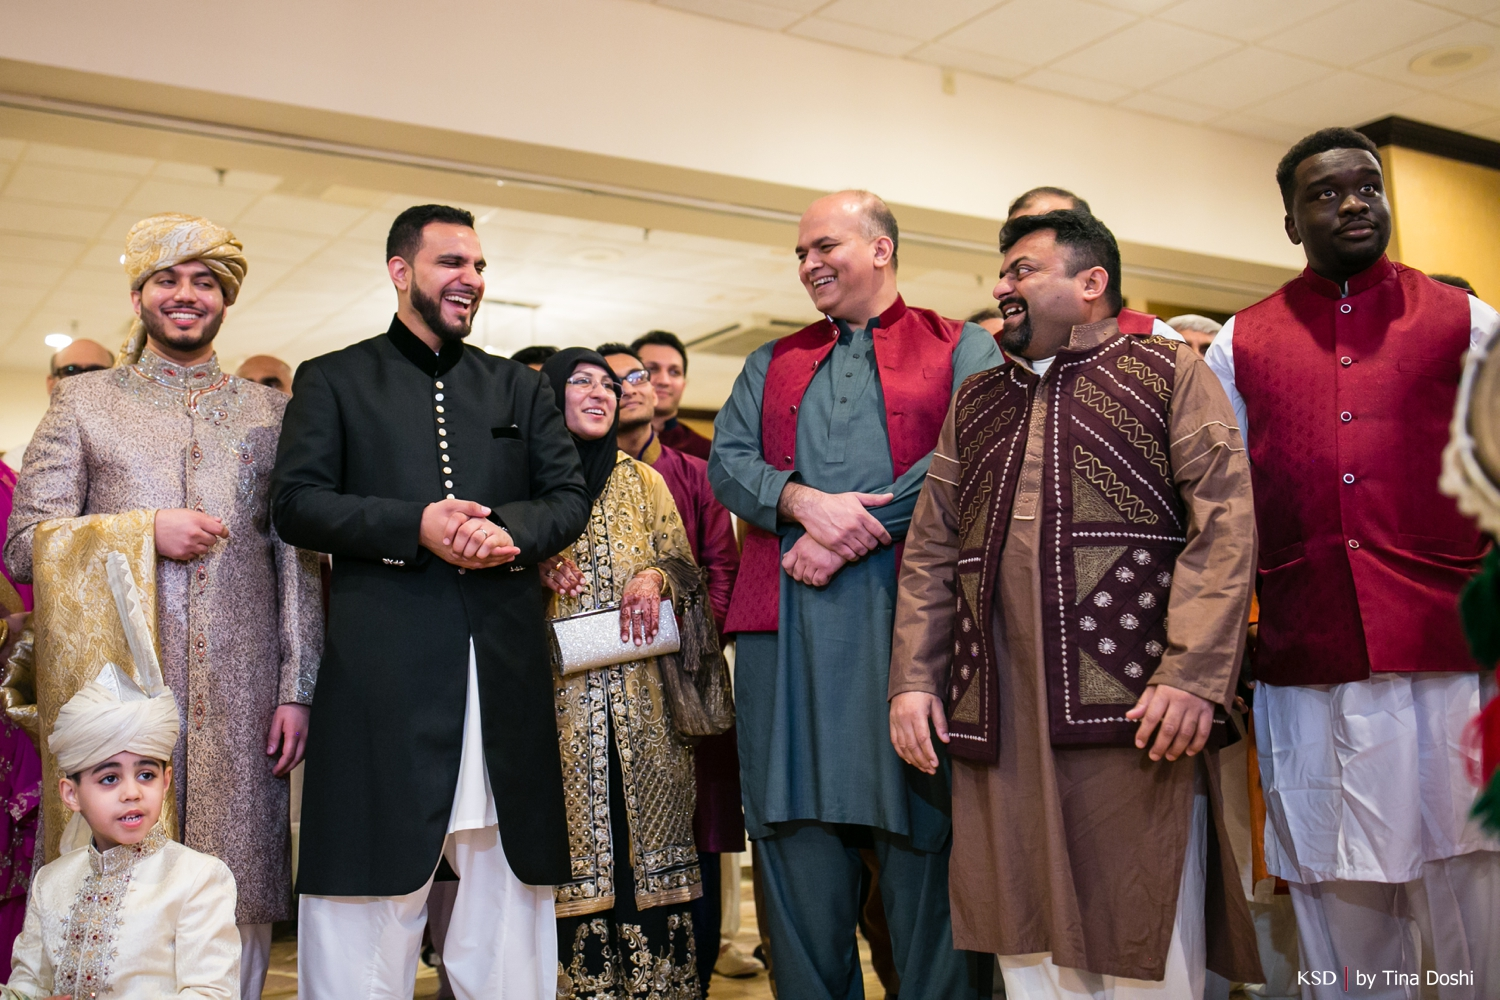 nj_south_asian_wedding_0039